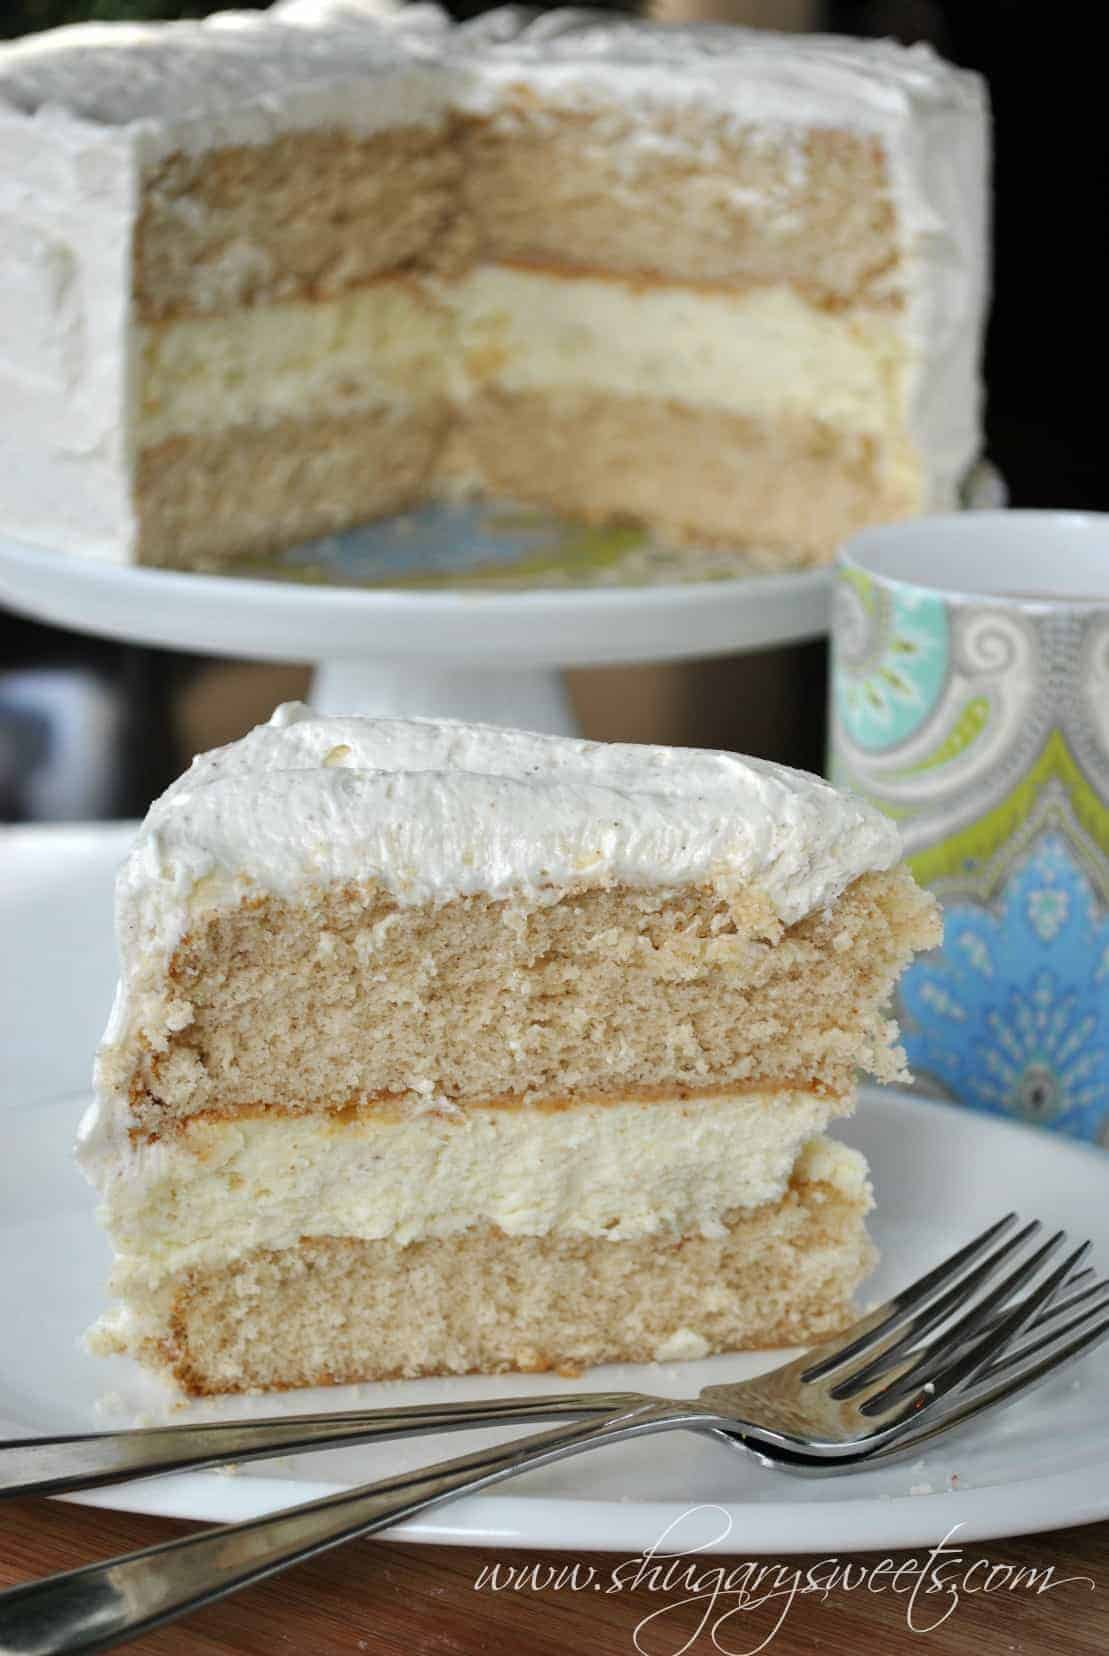 ... cheesecake topped with eggnog frosting! #cheesecake #eggnog #christmas